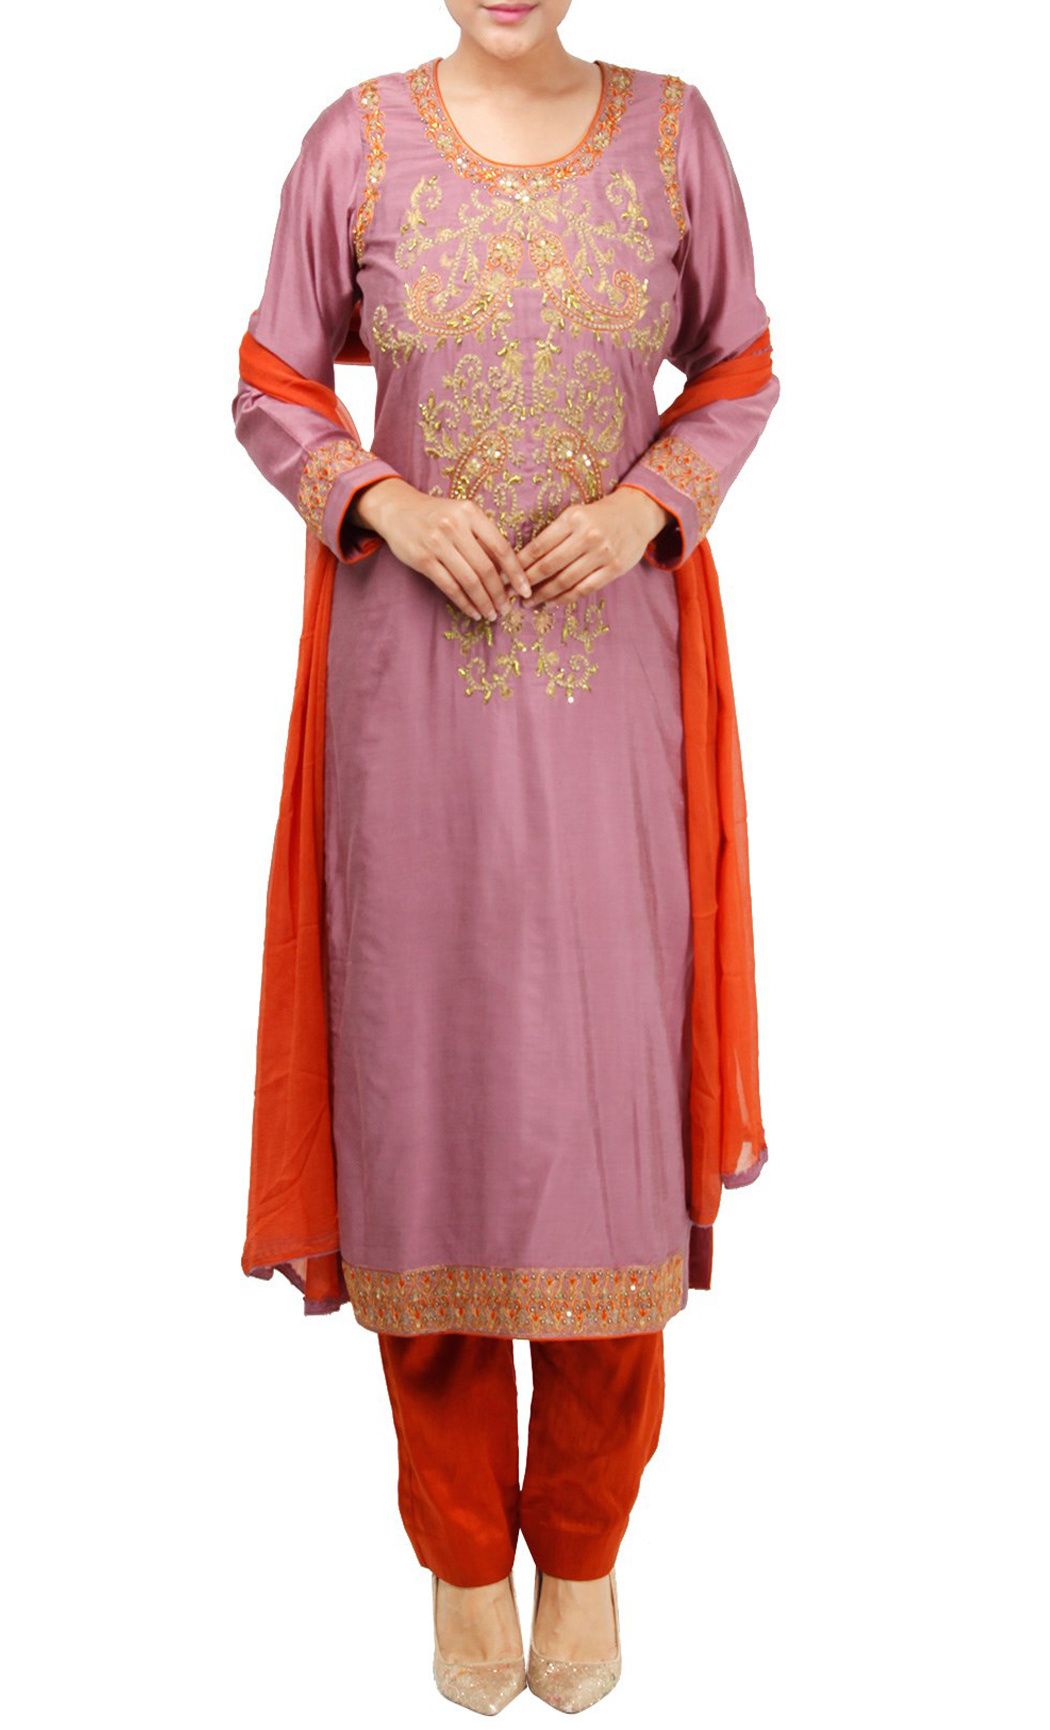 Pink Silk Embroidered Salwar Kameez Set - Buy Online